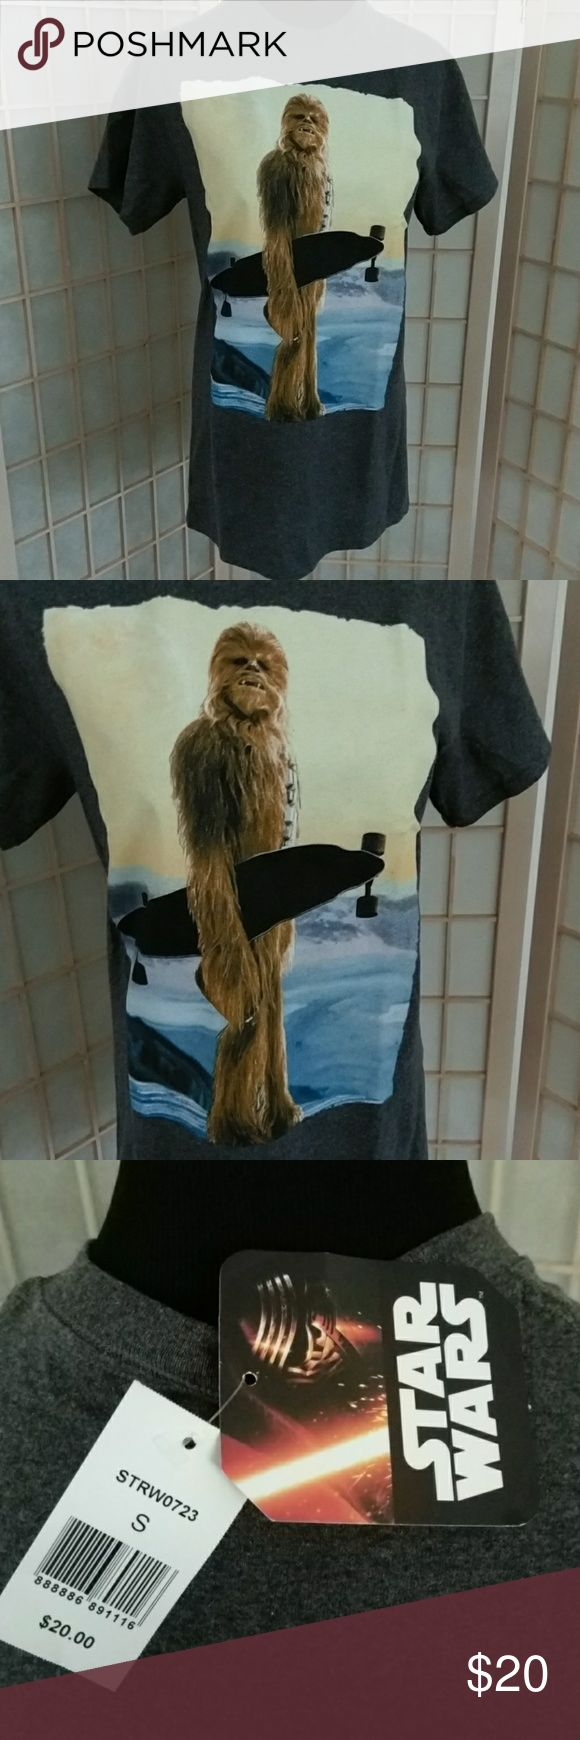 NWT Star Wars Wookie with skateboard men's T-shirt NWT men's size small grey T-shirt featuring Star Wars character Chewbaca the Wookie with a skateboard . 50% cotton 50% polyester. Disney. Star Wars. Lucas films. Disney Shirts Tees - Short Sleeve